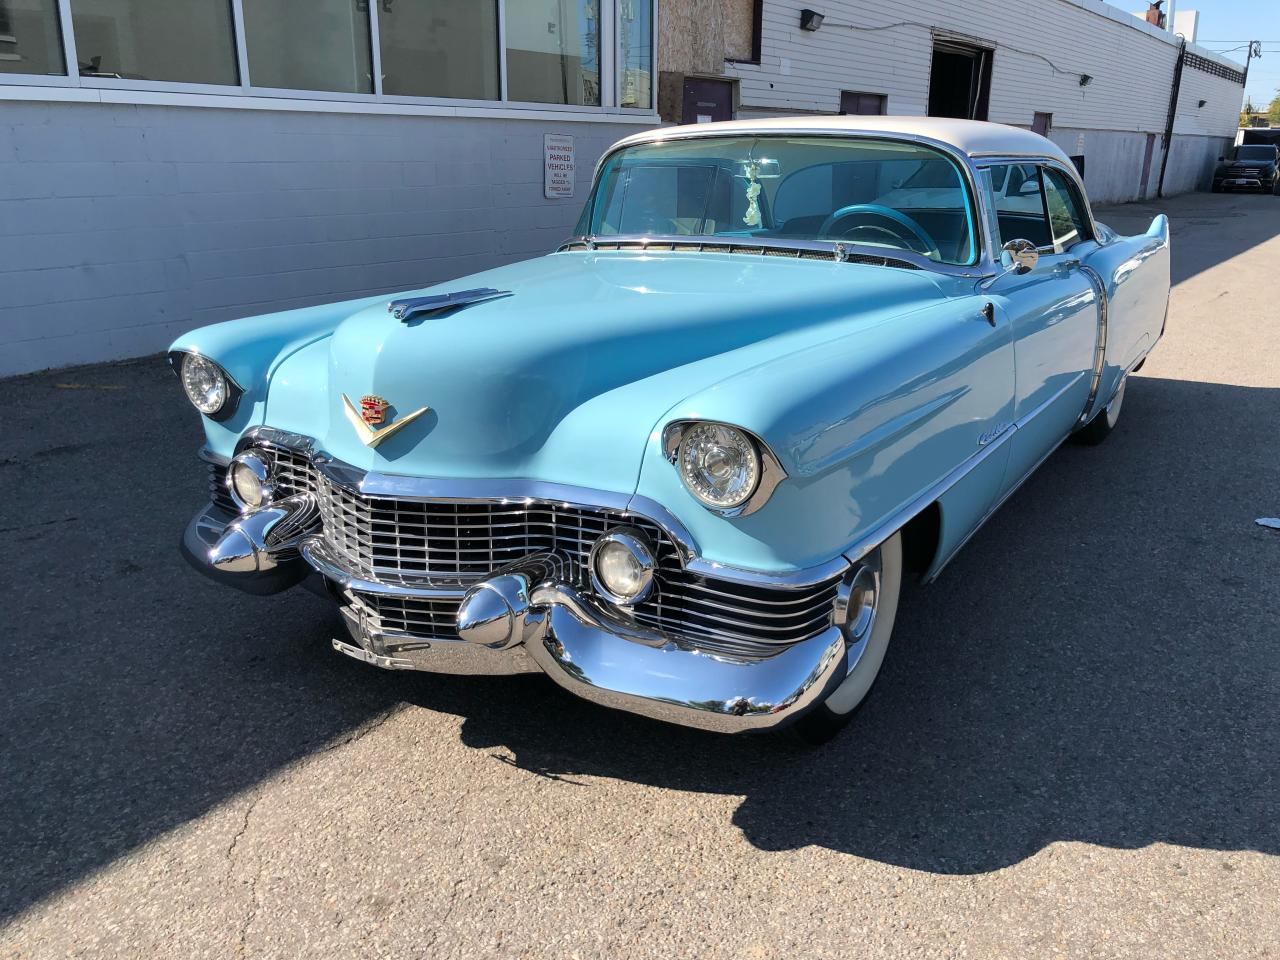 52 Cadillac 1950 To 1952 Series 62 For Sale On Classiccars 1954 Sedan Deville Used Coupe De Ville In North York